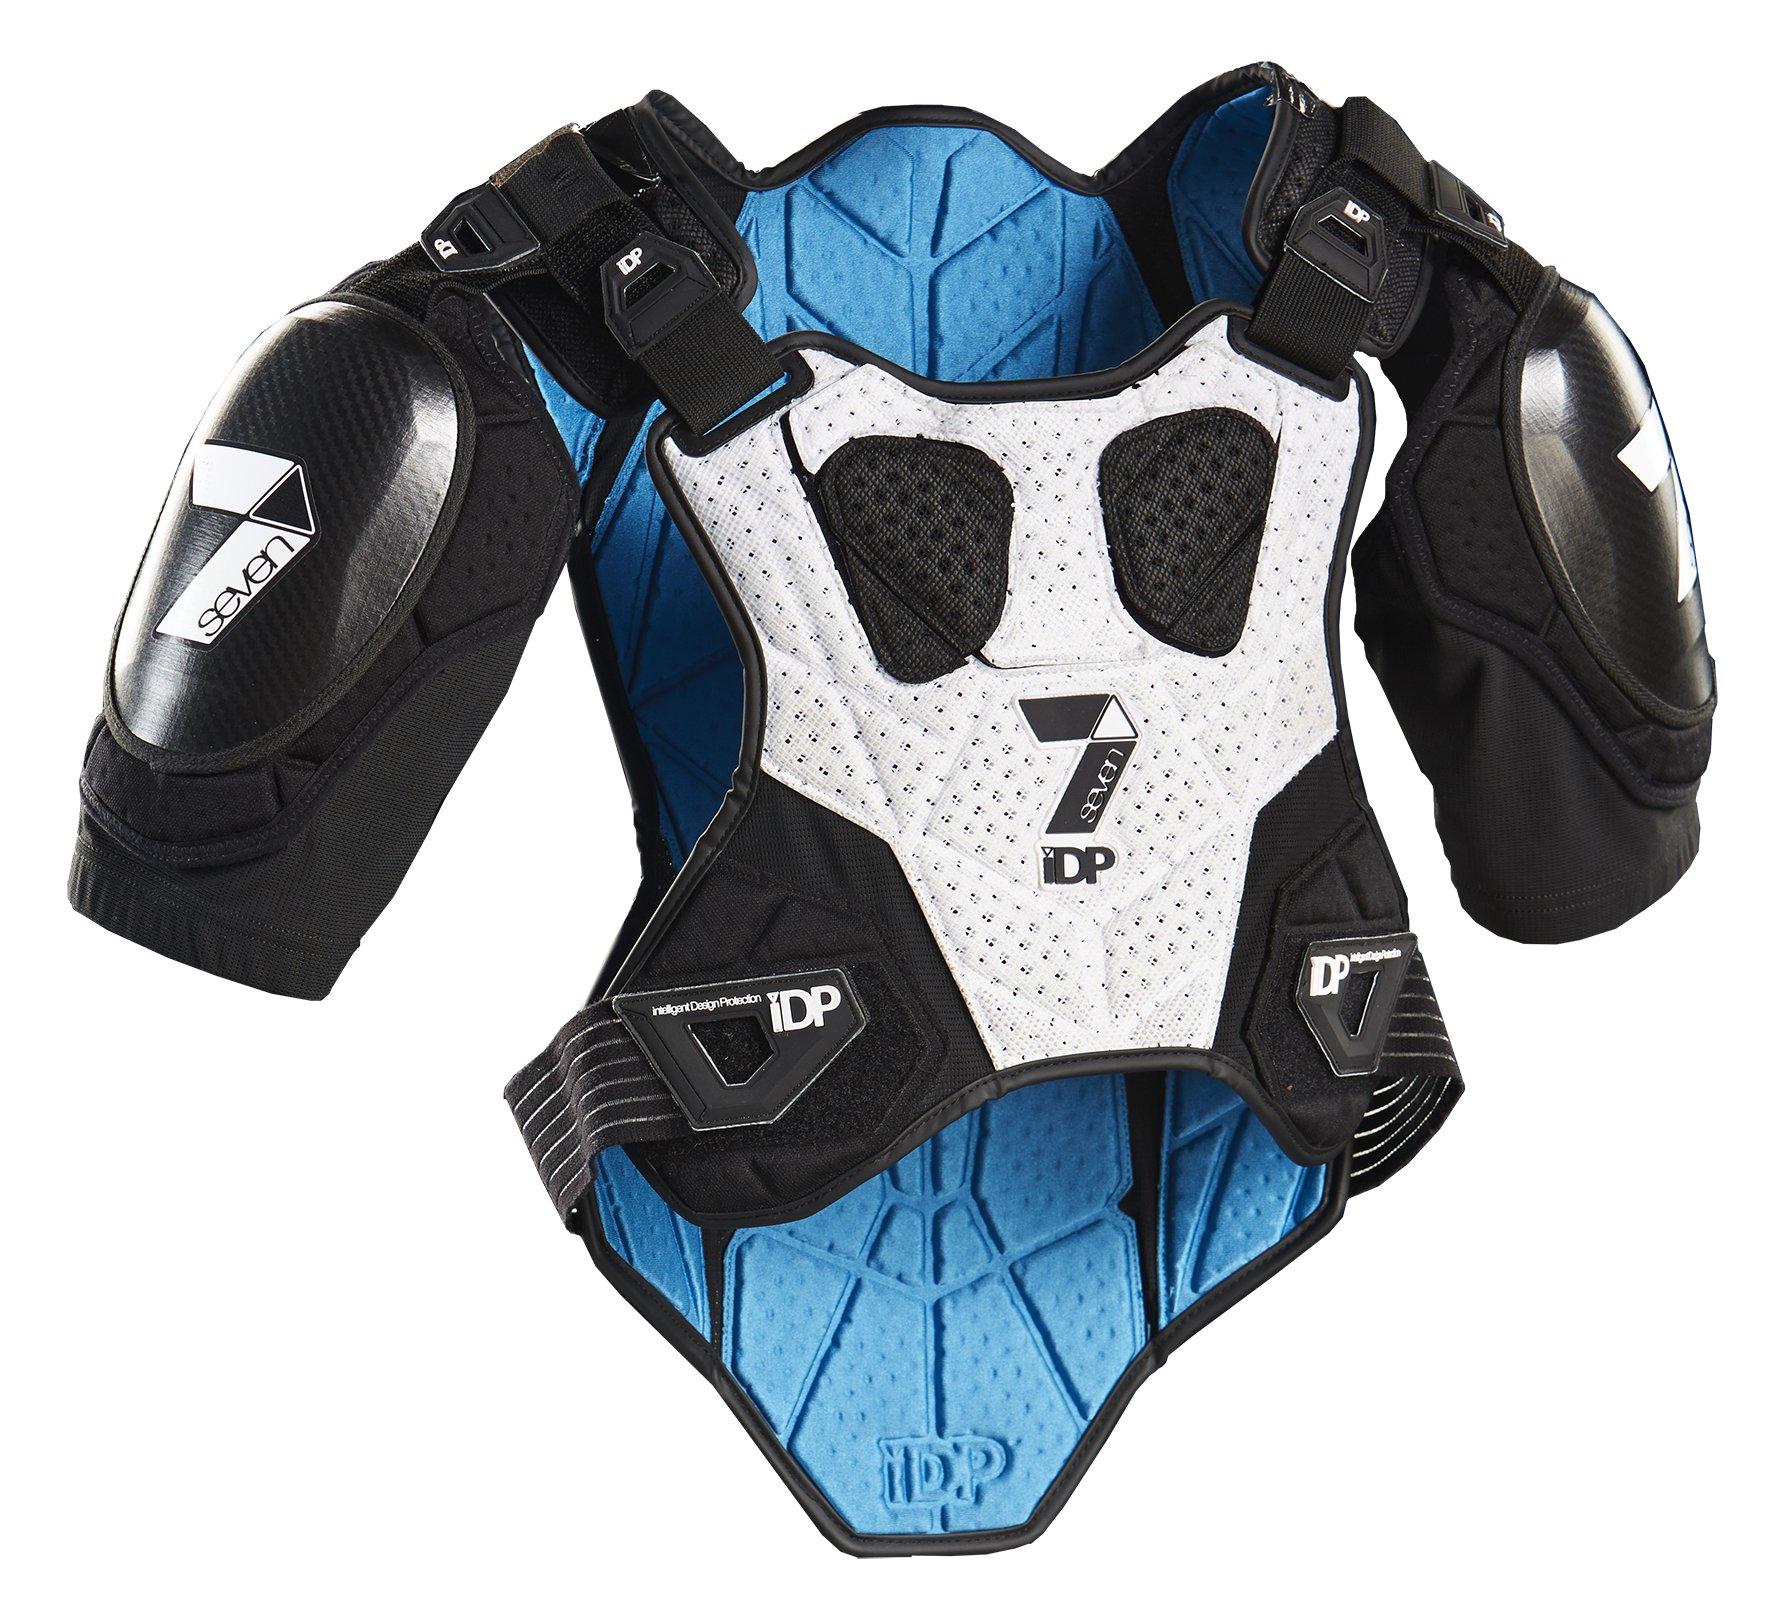 7iDP Control Body Protection, Black, Large/X-Large